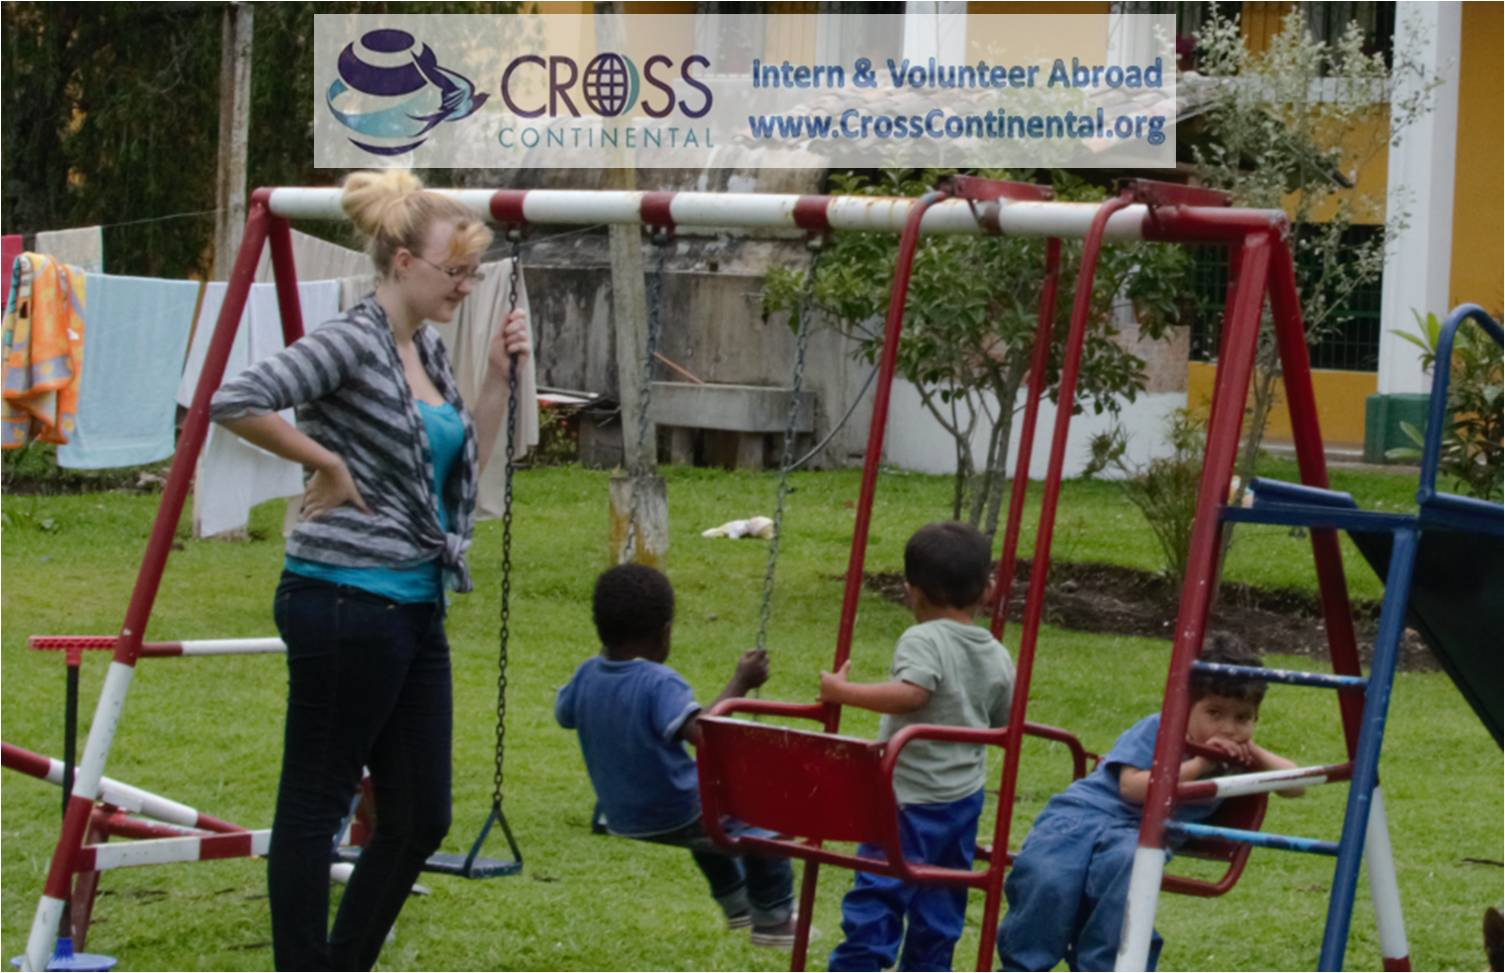 international internships and volunteer abroad -Latin America-Ecuador-125-HIV orphanage work